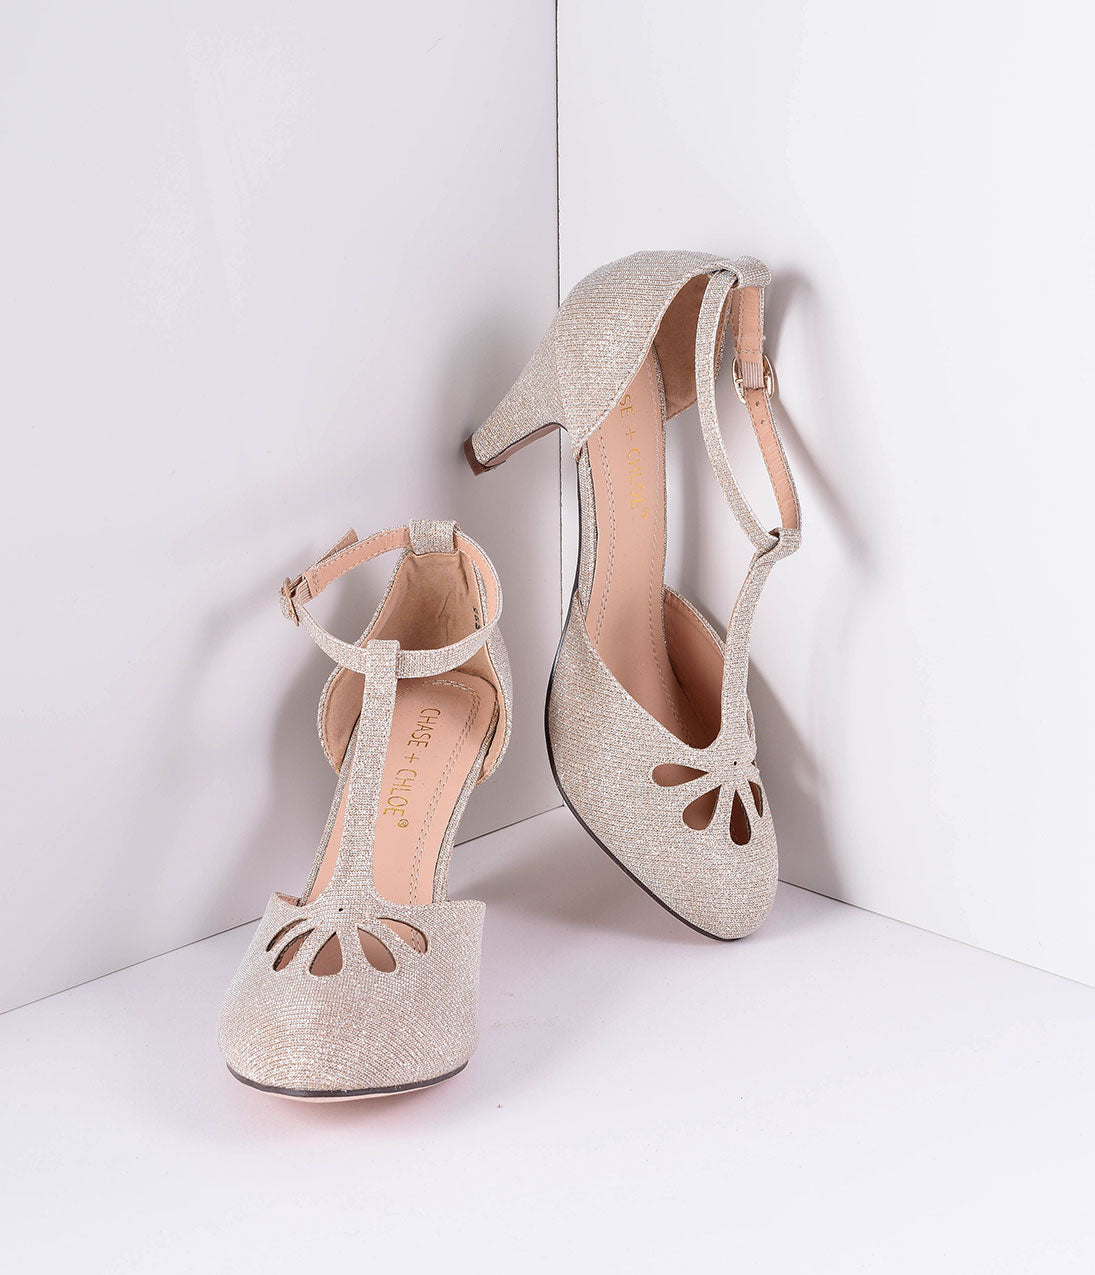 Vintage Style Shoes, Vintage Inspired Shoes Nude Sparkle Cutout Kimmy T-Strap Heels $46.00 AT vintagedancer.com